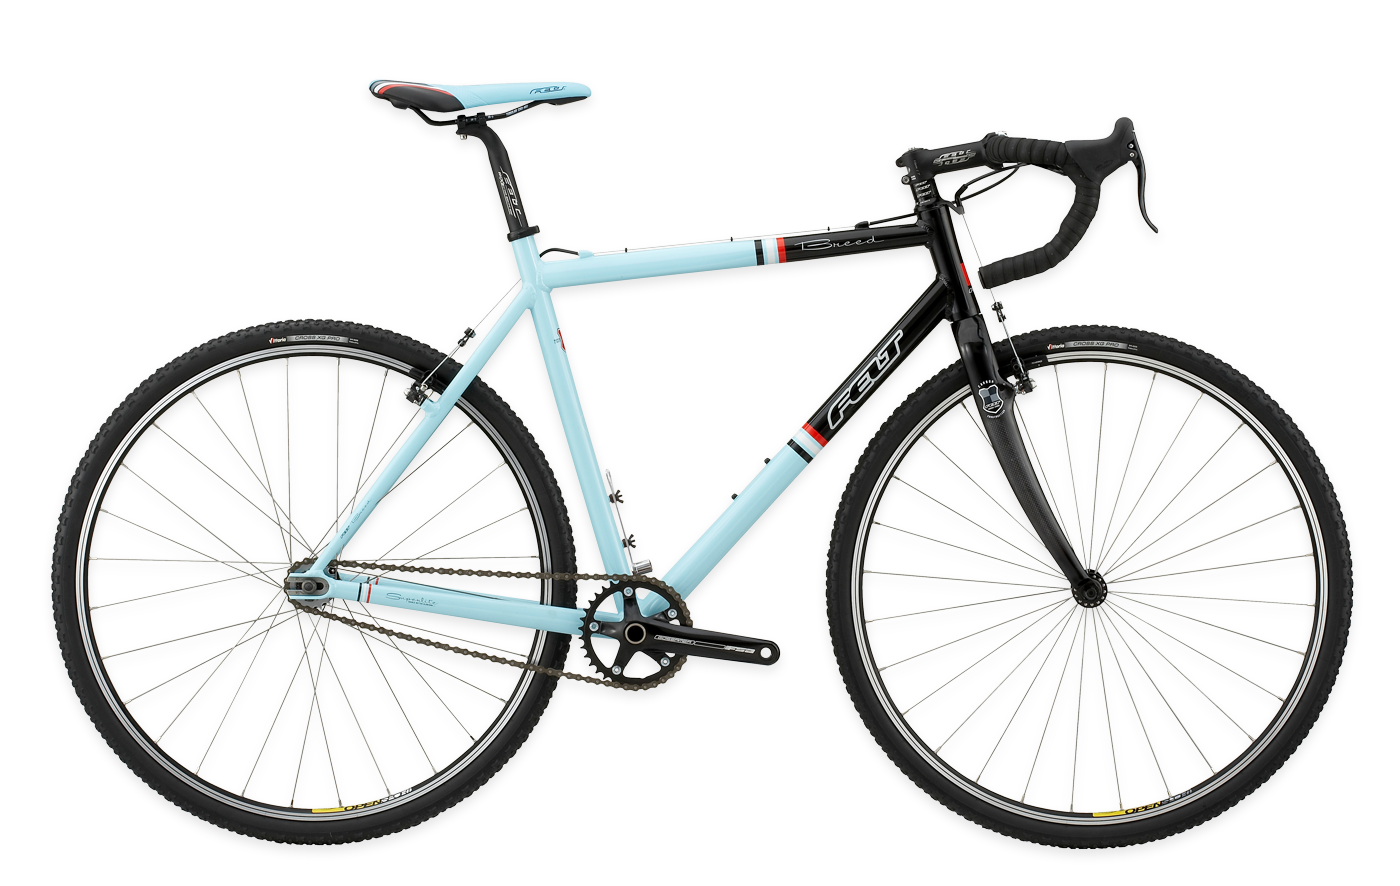 Cyclo Cross Bicycle Png - Download Bicycle PNG Image for Free